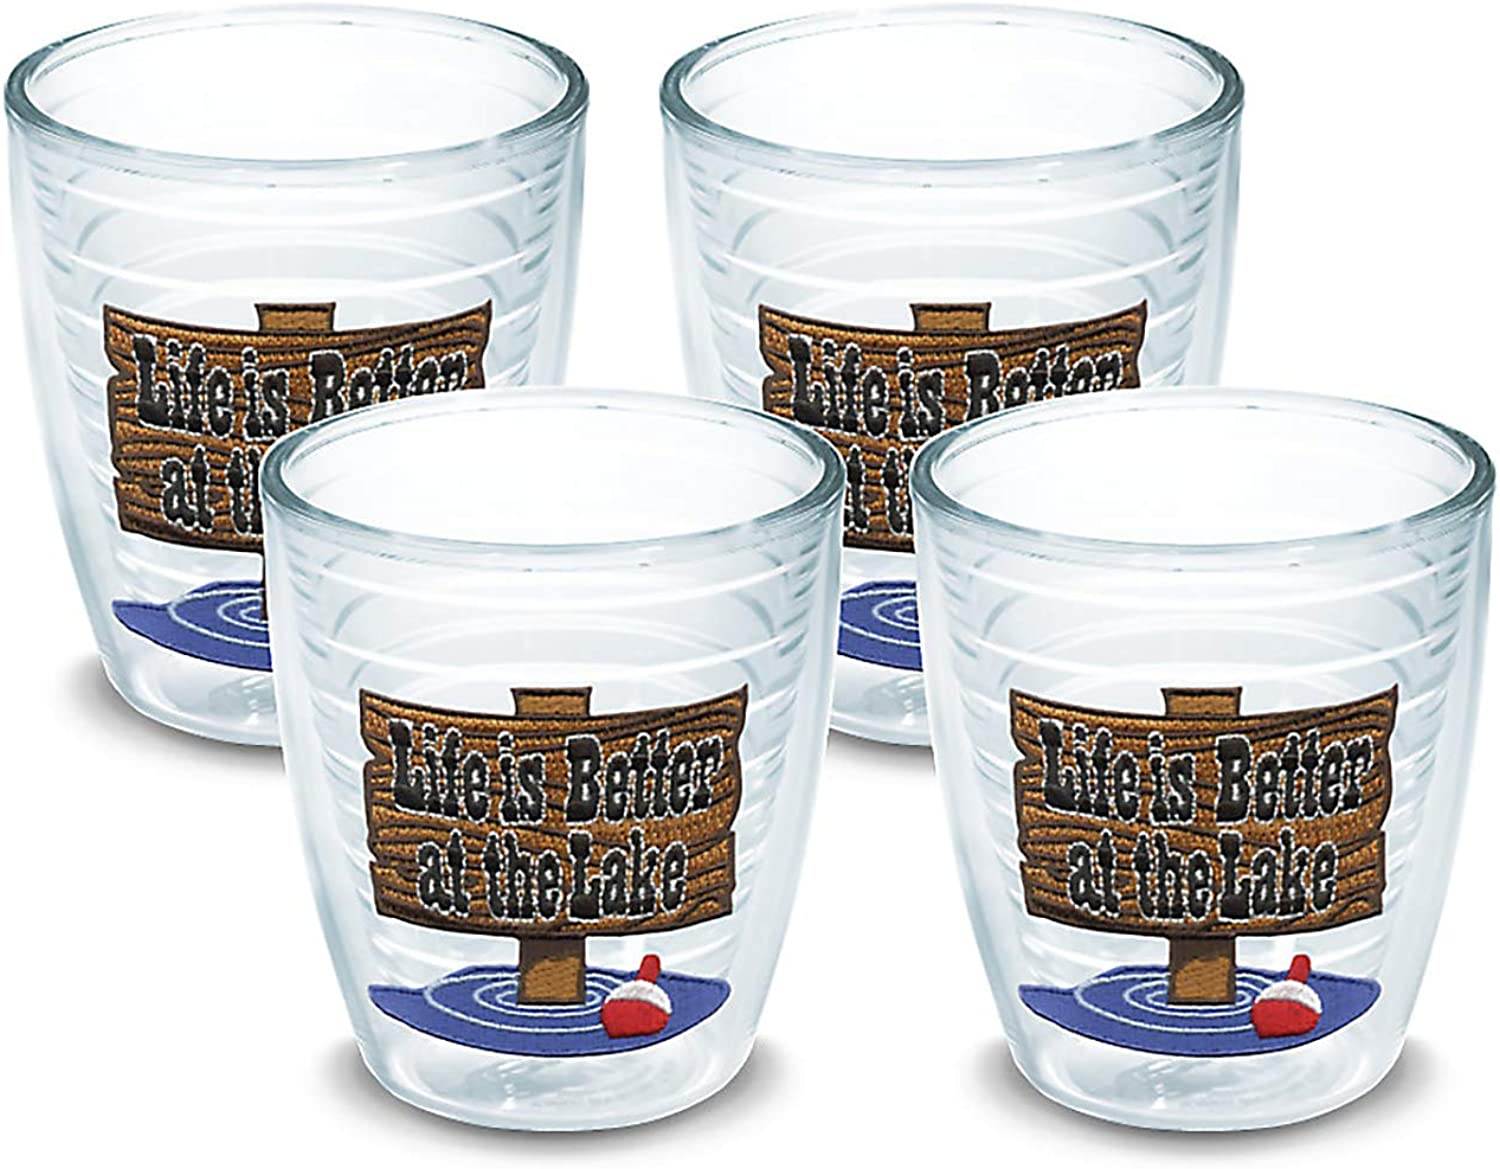 Tervis 1040876 Life is Better at the Lake Tumbler with Emblem 4 Pack 12oz, Clear